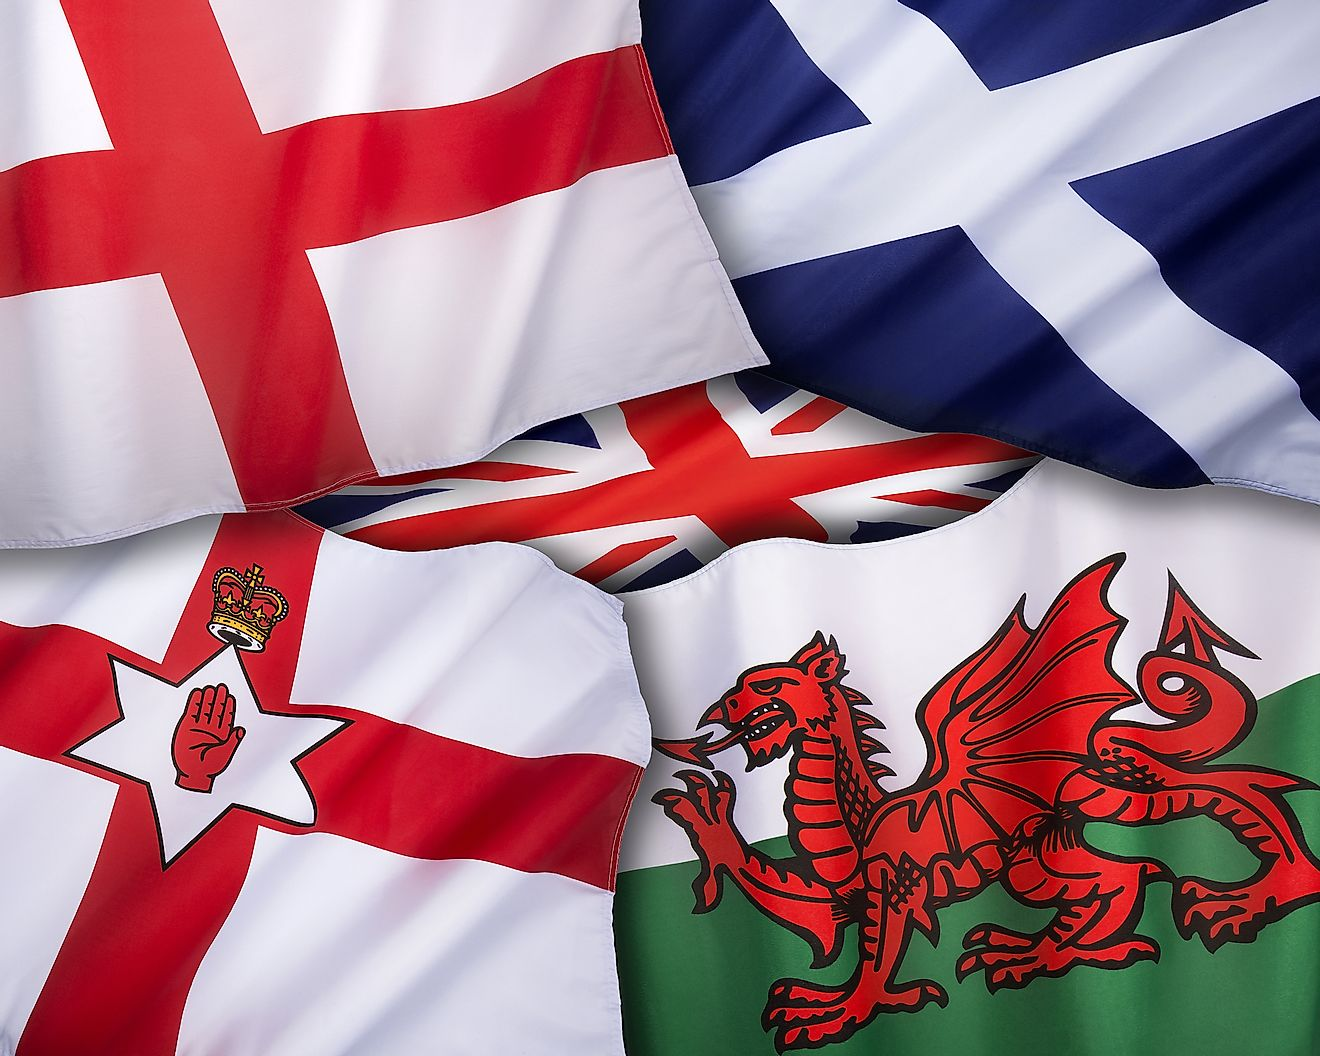 The flags of the United Kingdom of Great Britain - England, Scotland, Wales and Northern Ireland. Image credit: Steve Allen/Shutterstock.com